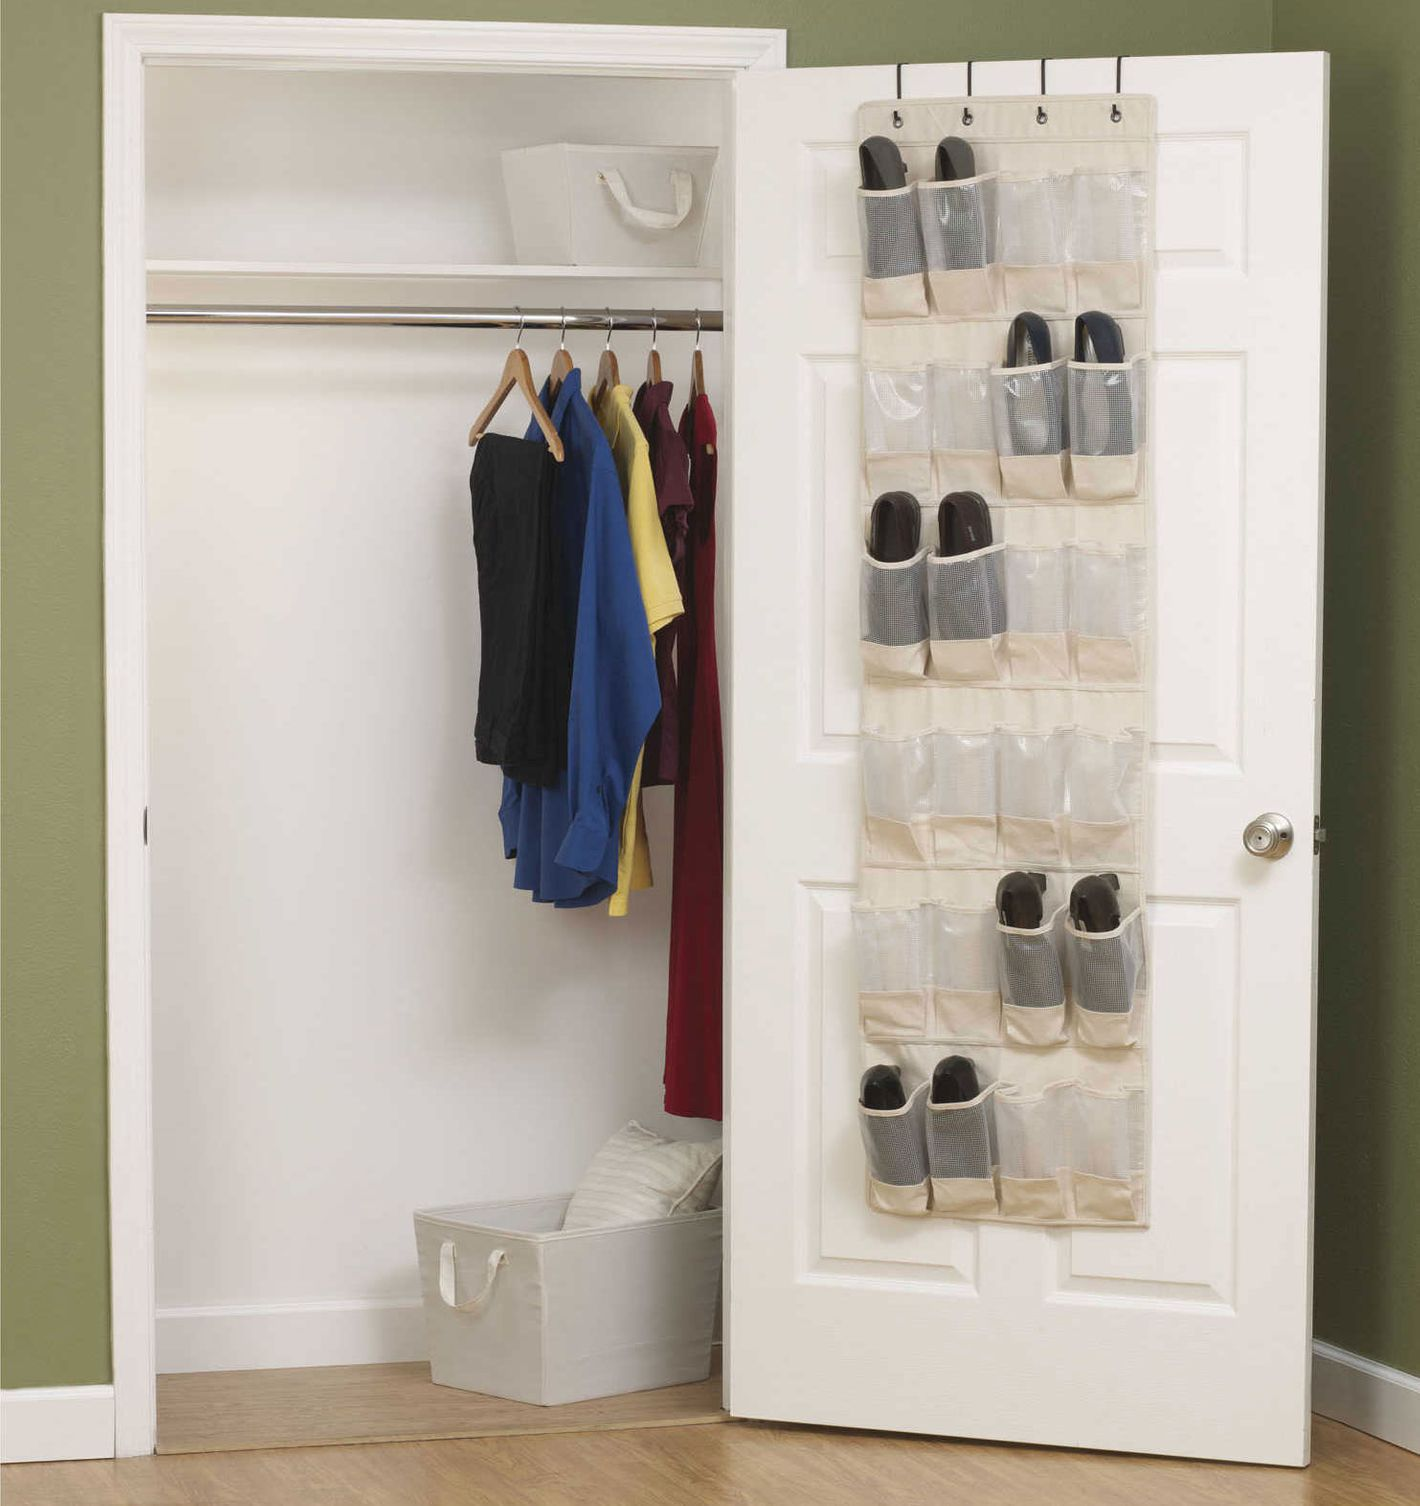 Best Over-the-Door Shoe Rack — Whitmor Shoe Rack Review